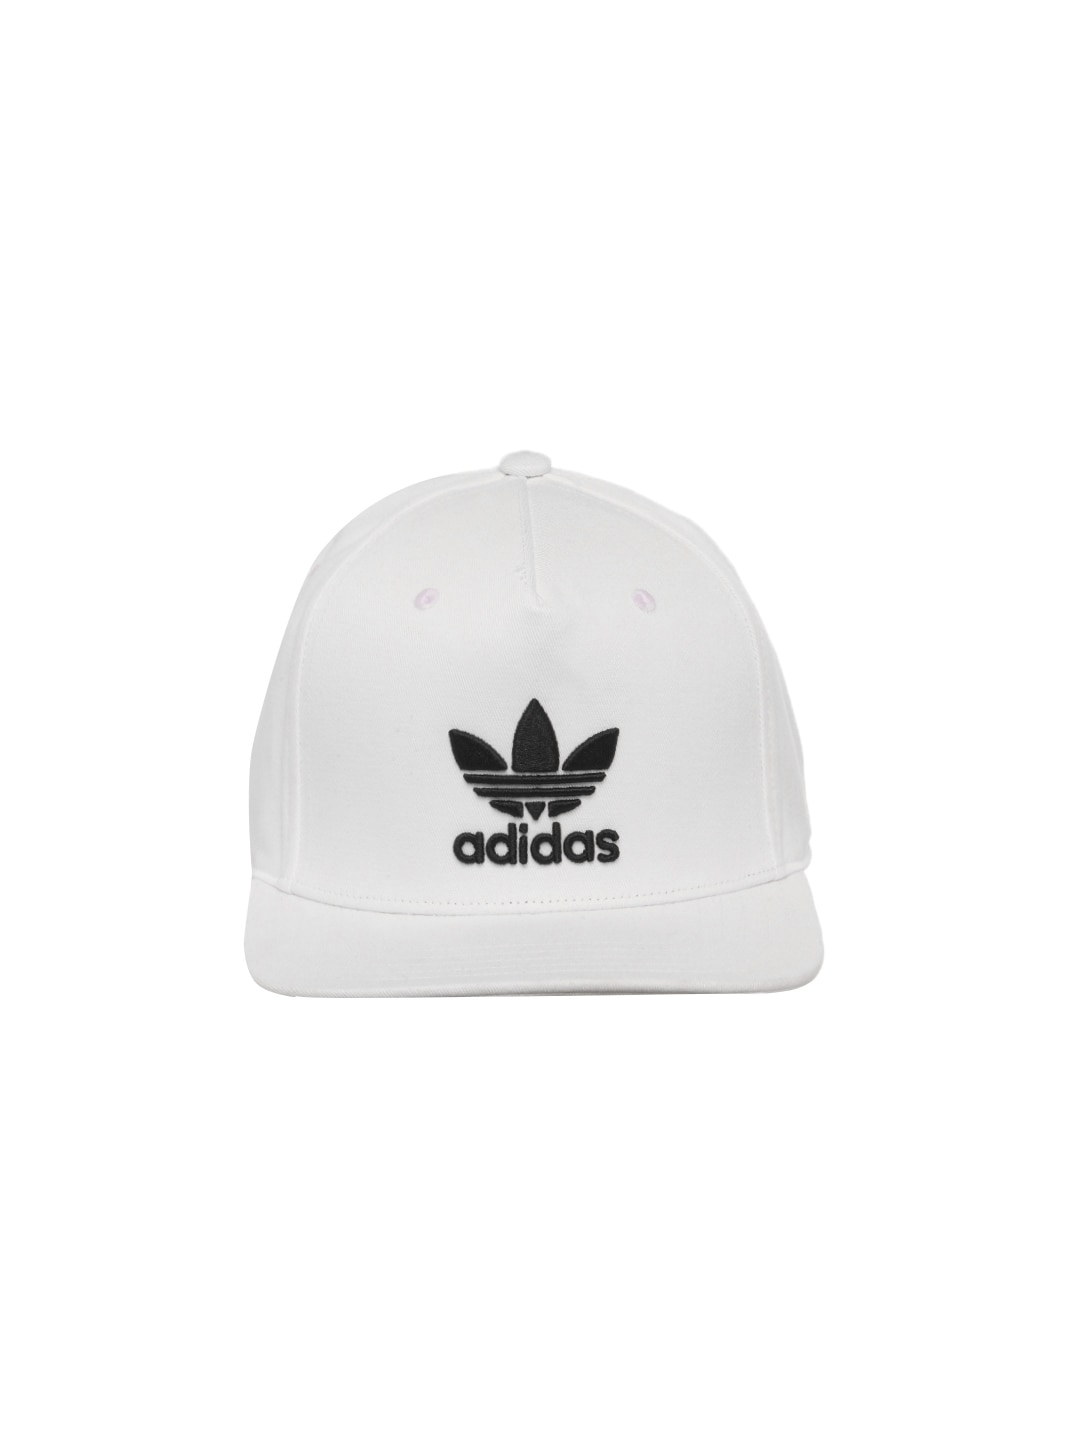 beanie adidas beige size m international in synthetic